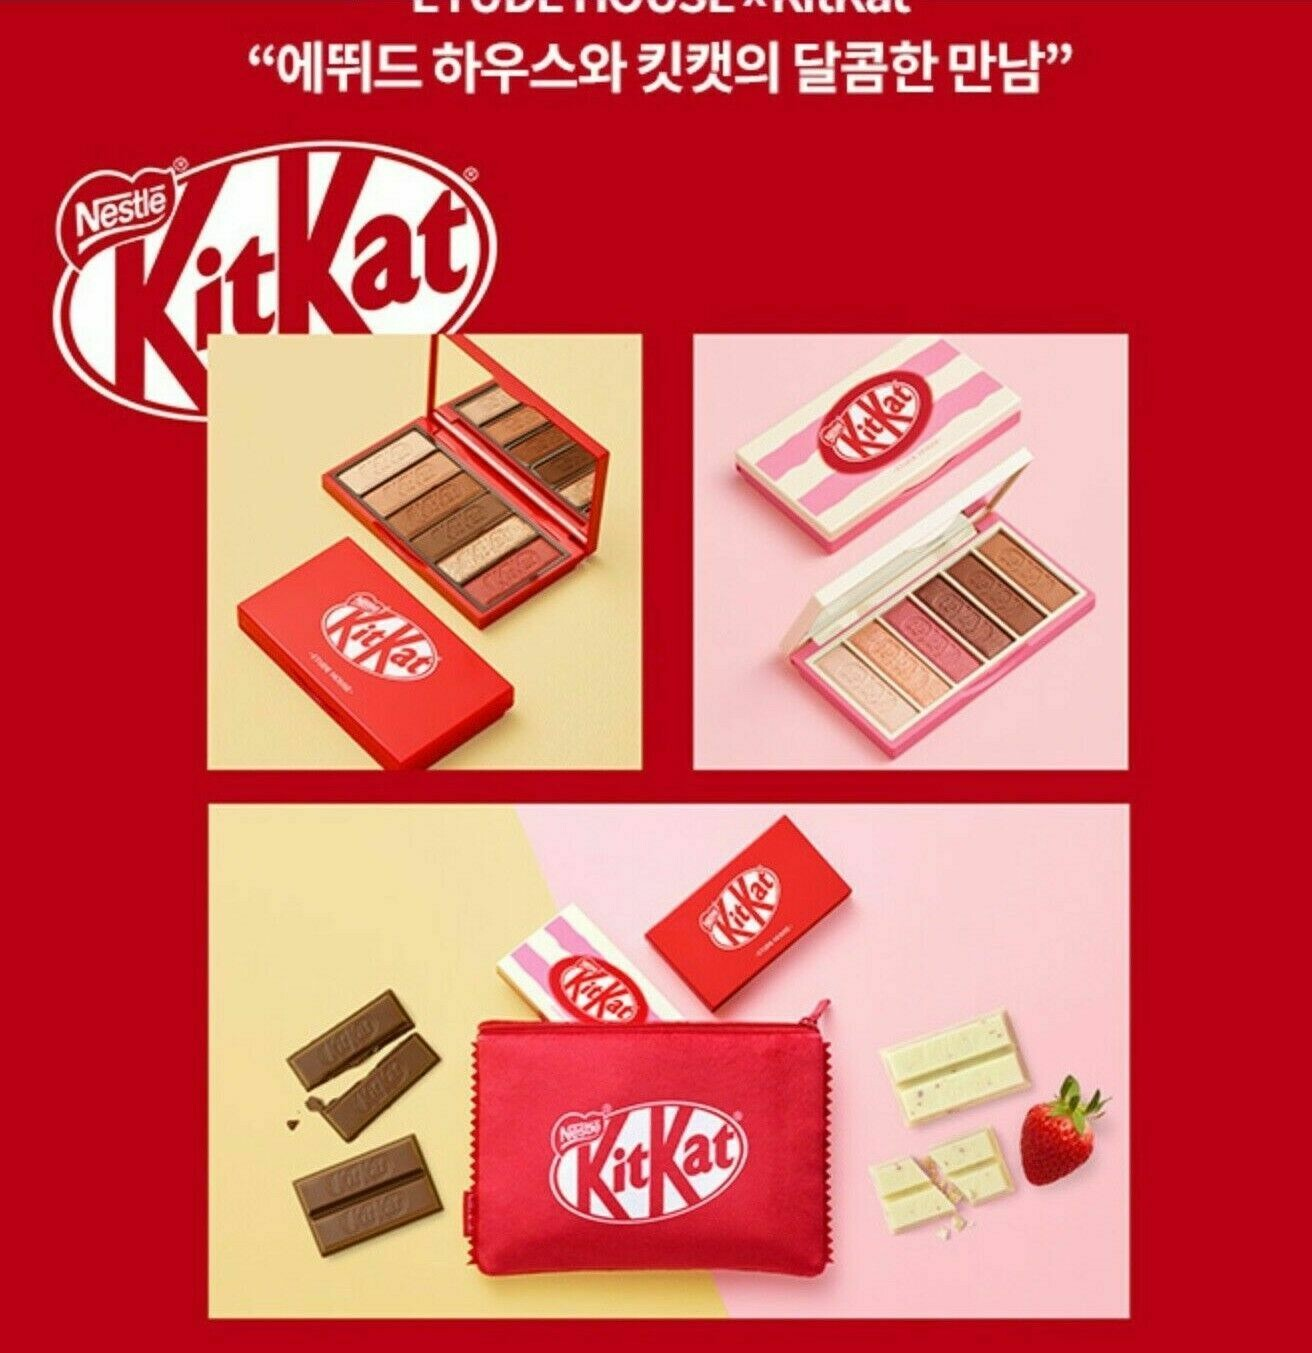 [ETUDE HOUSE X CHOCOLATE] PLAY COLOR EYES MINI KIT & POUCH SET / Strawberry